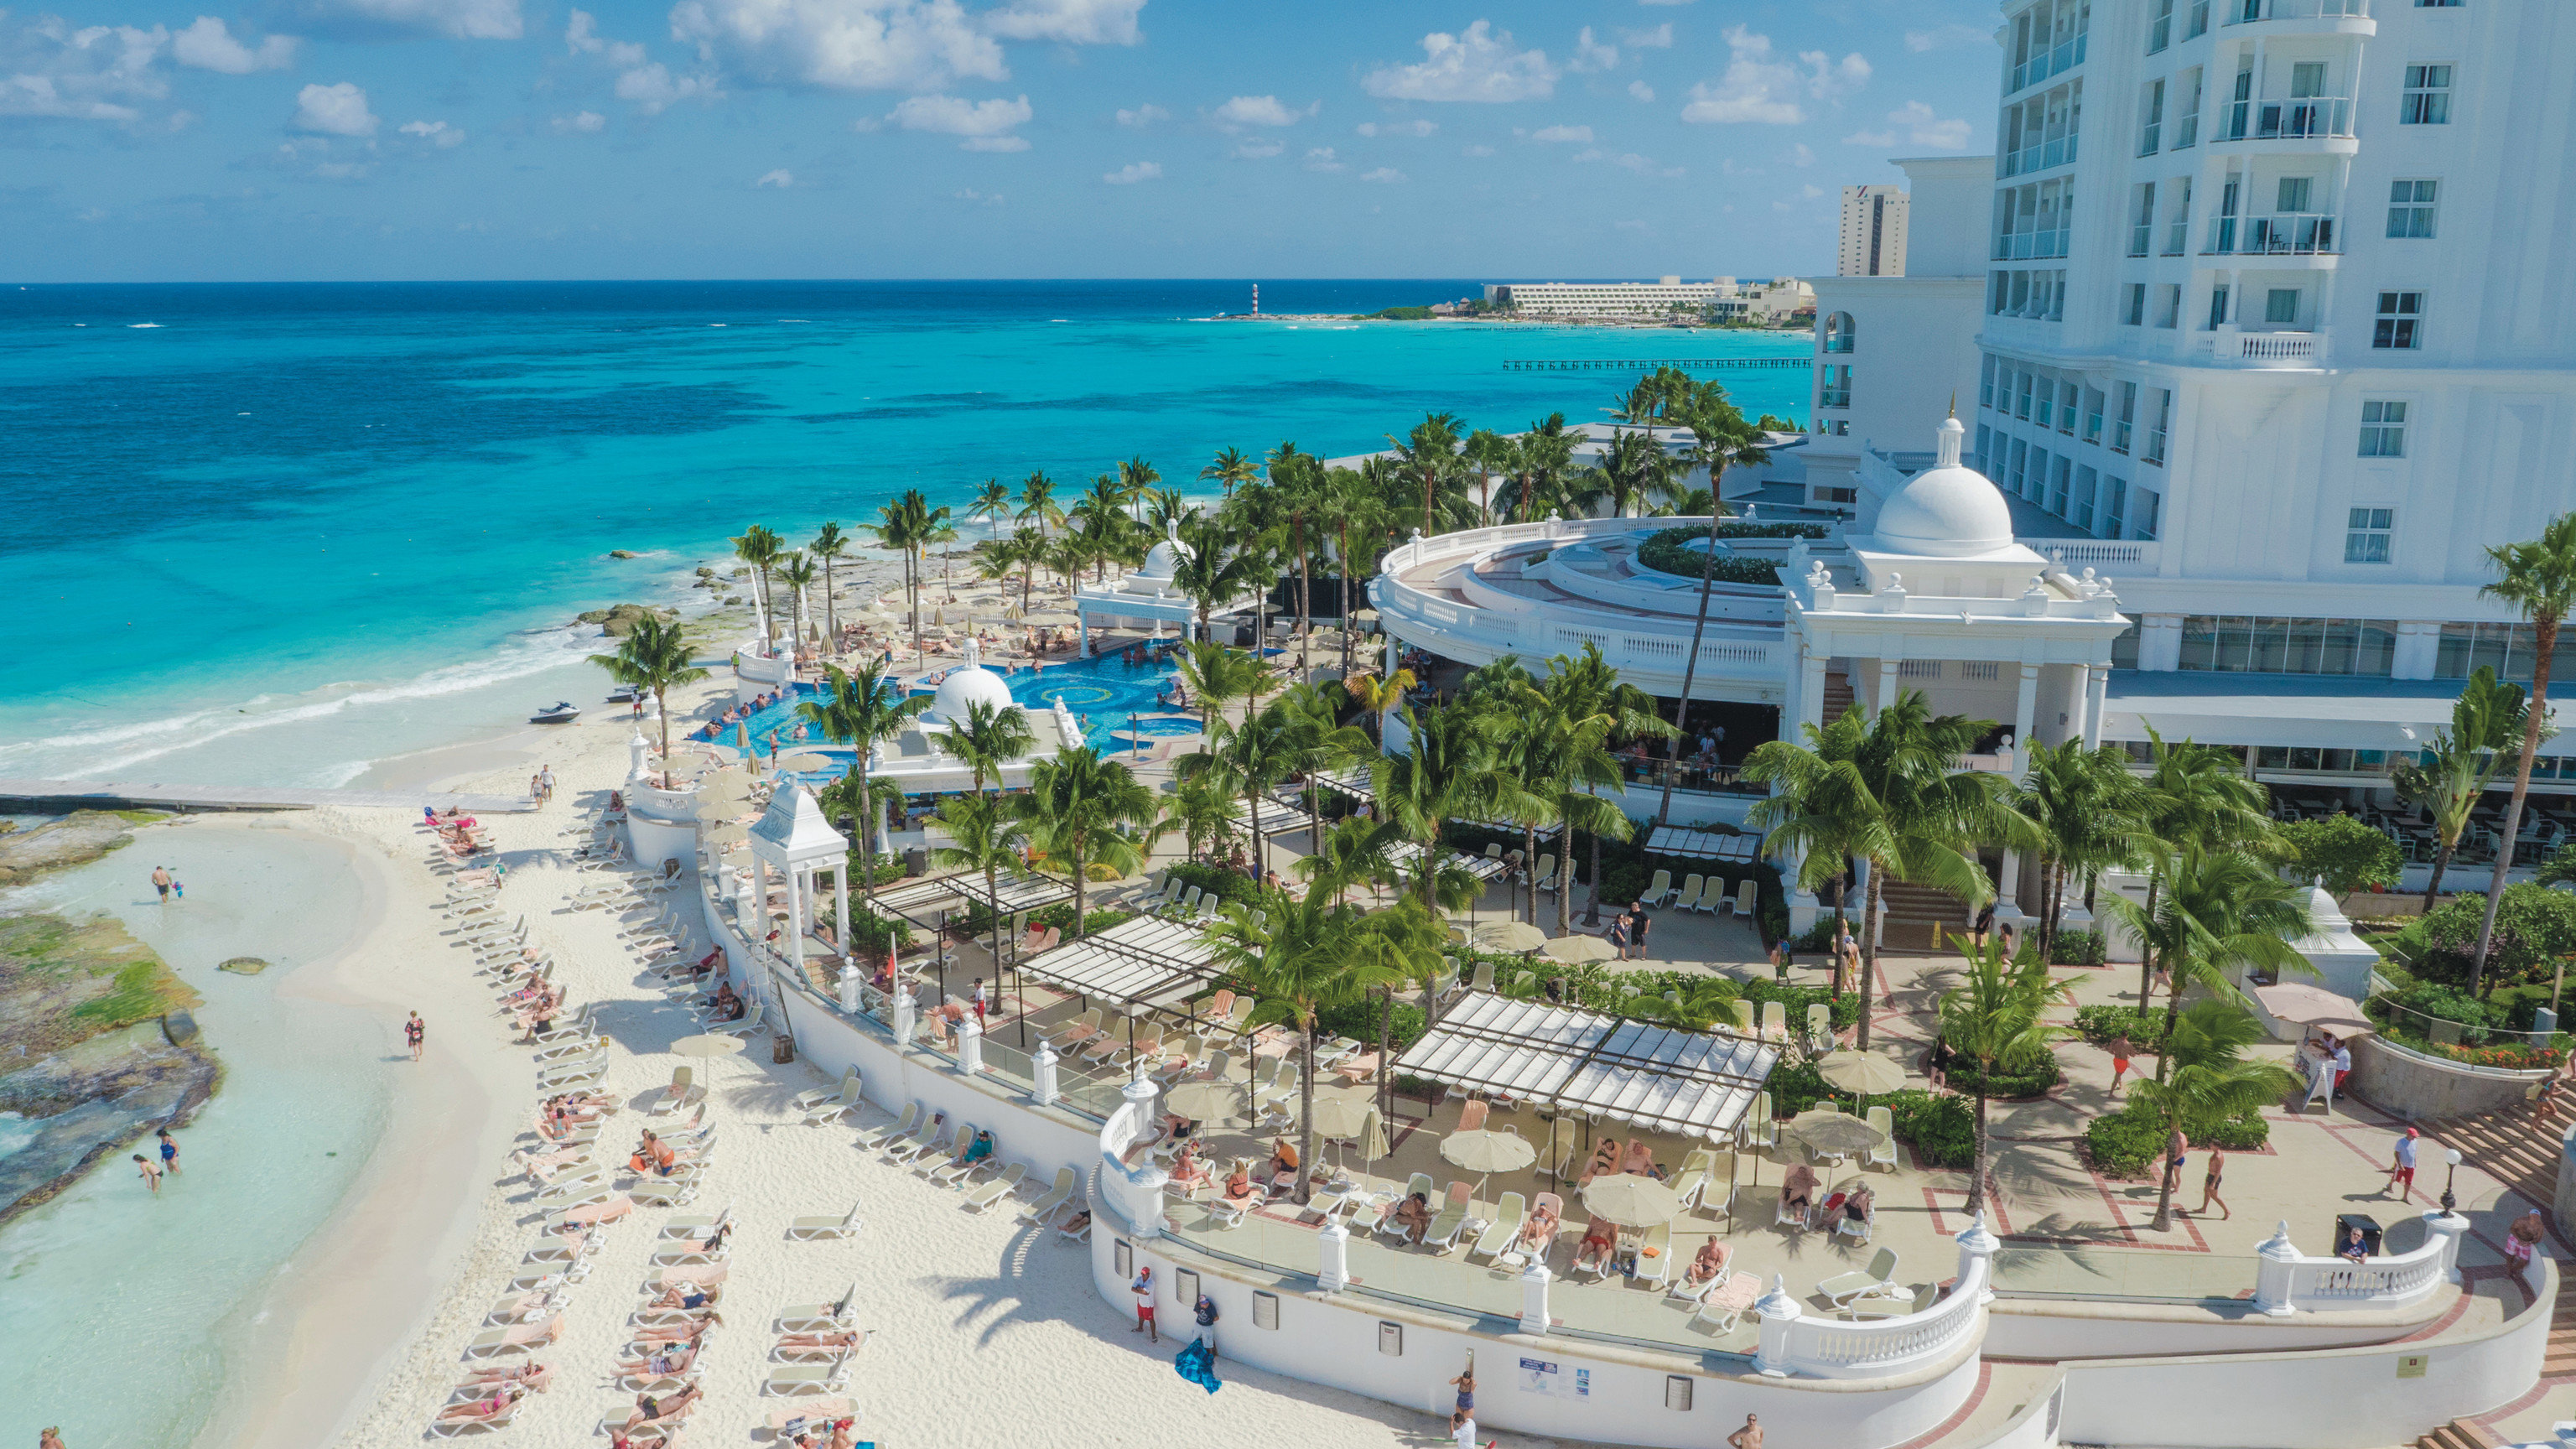 Adult-only All-Inclusive Resorts Cancun Hotels Mexico Resort tourism vacation caribbean resort town palm tree real estate coastal and oceanic landforms arecales hotel Coast bay leisure condominium Beach